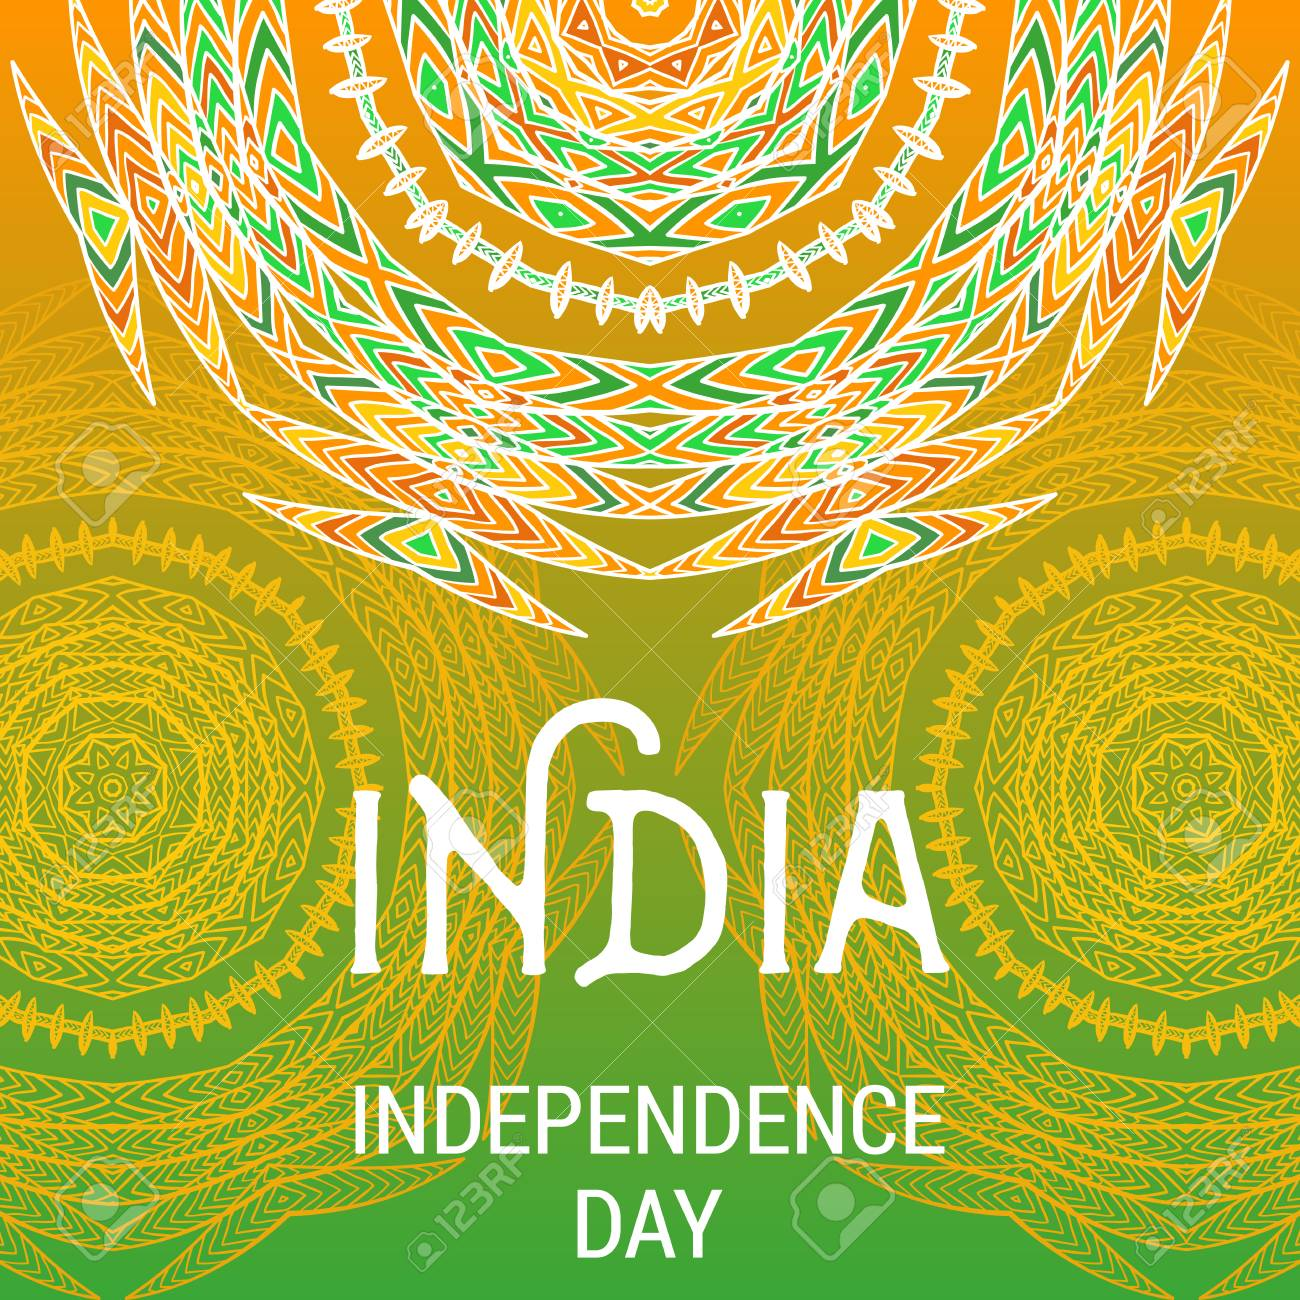 India Independence Day Beautiful Greeting Card Invitation For